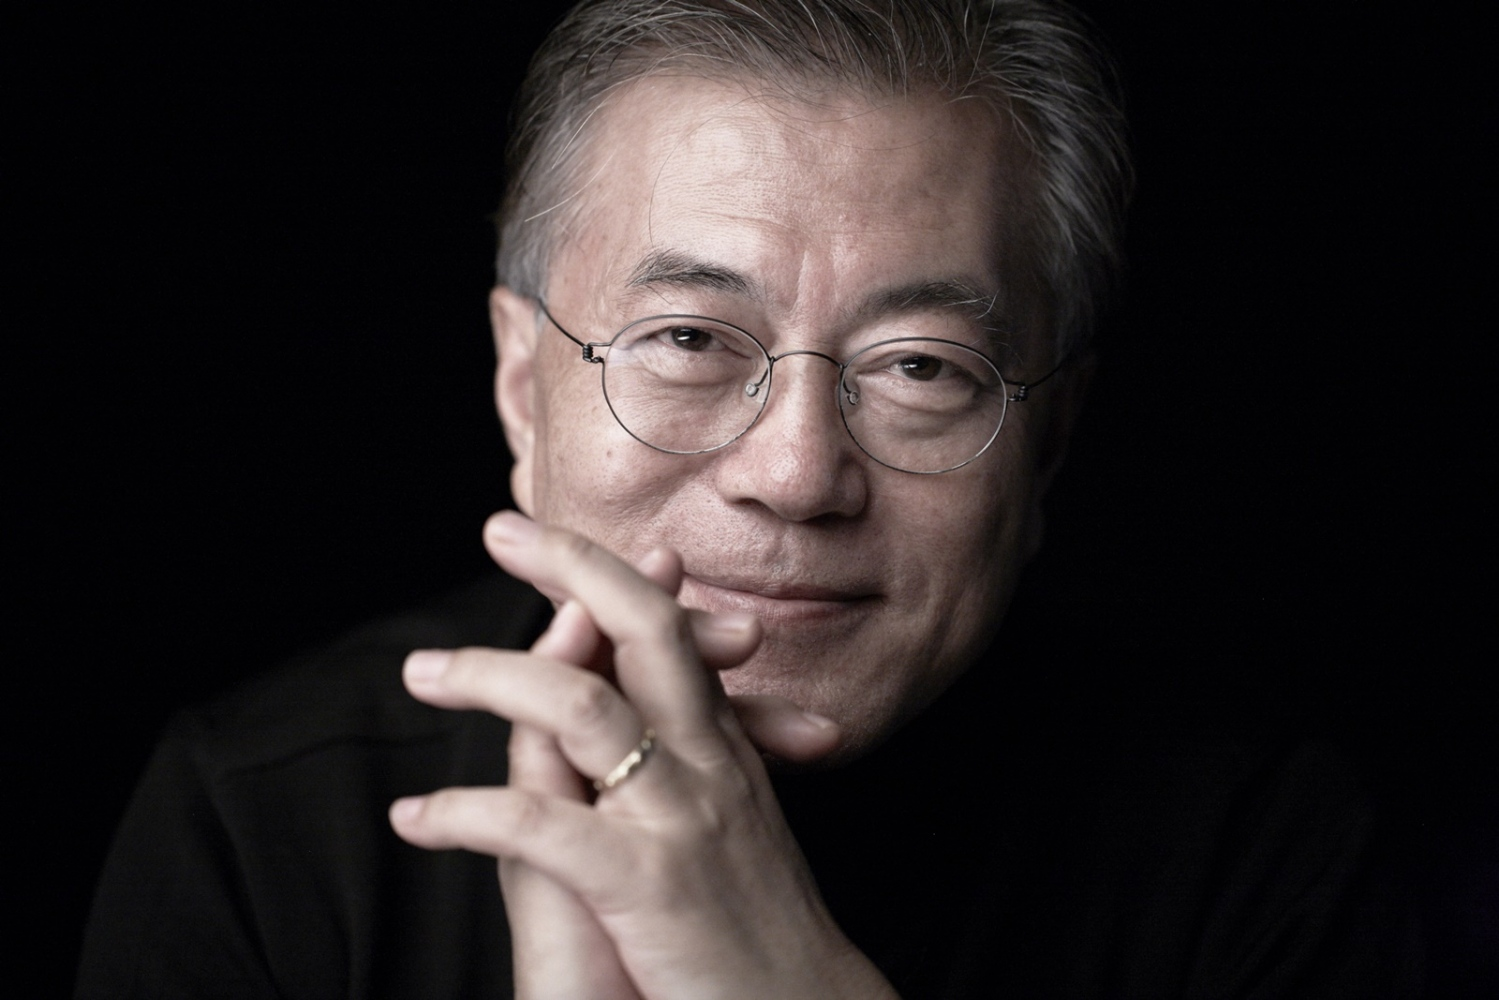 Jae-In Moon, C urrent President of South Korea   Moon was elected after the impeachment of his predecessor, Park Geun-hye.